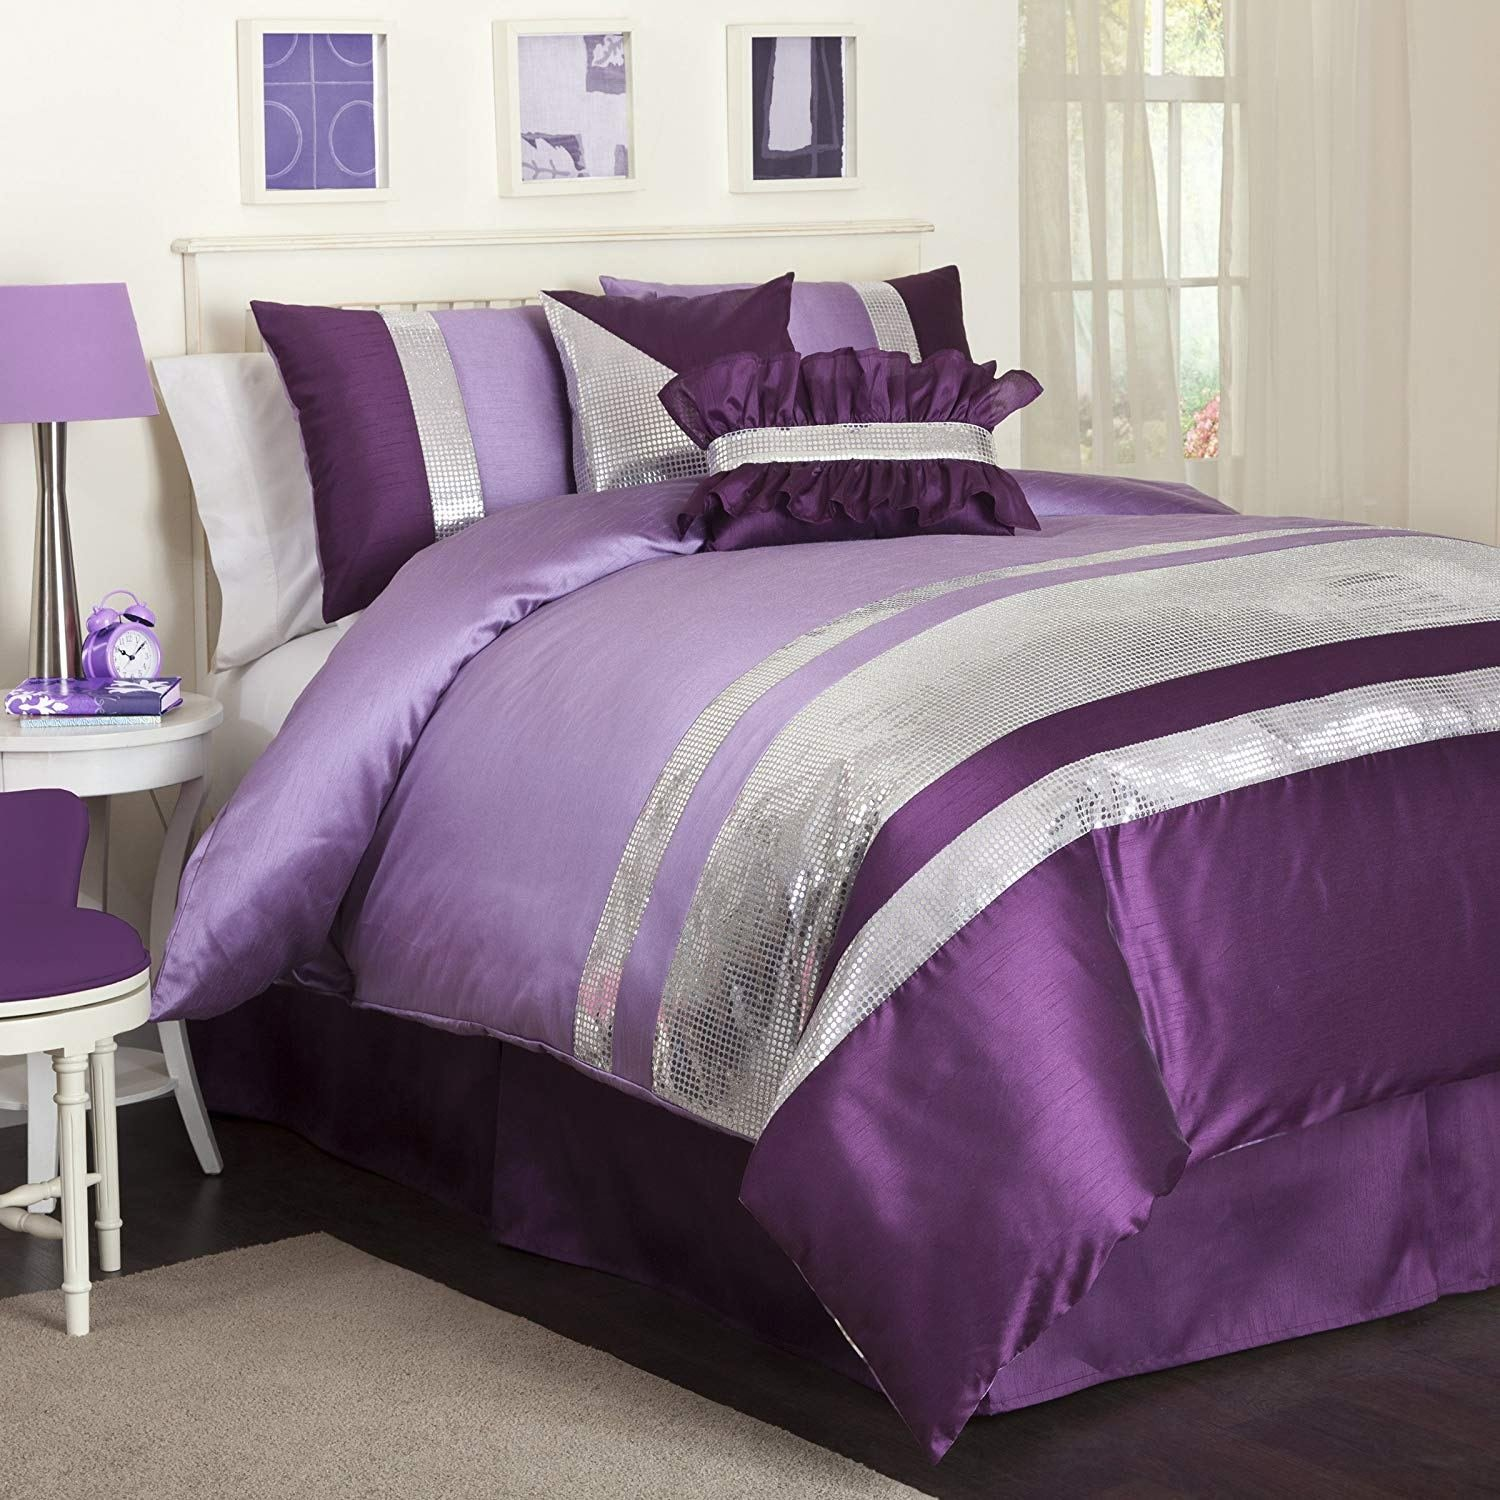 Best The Exhaustive List Of Best Bedding Sets In 2013 With Pictures